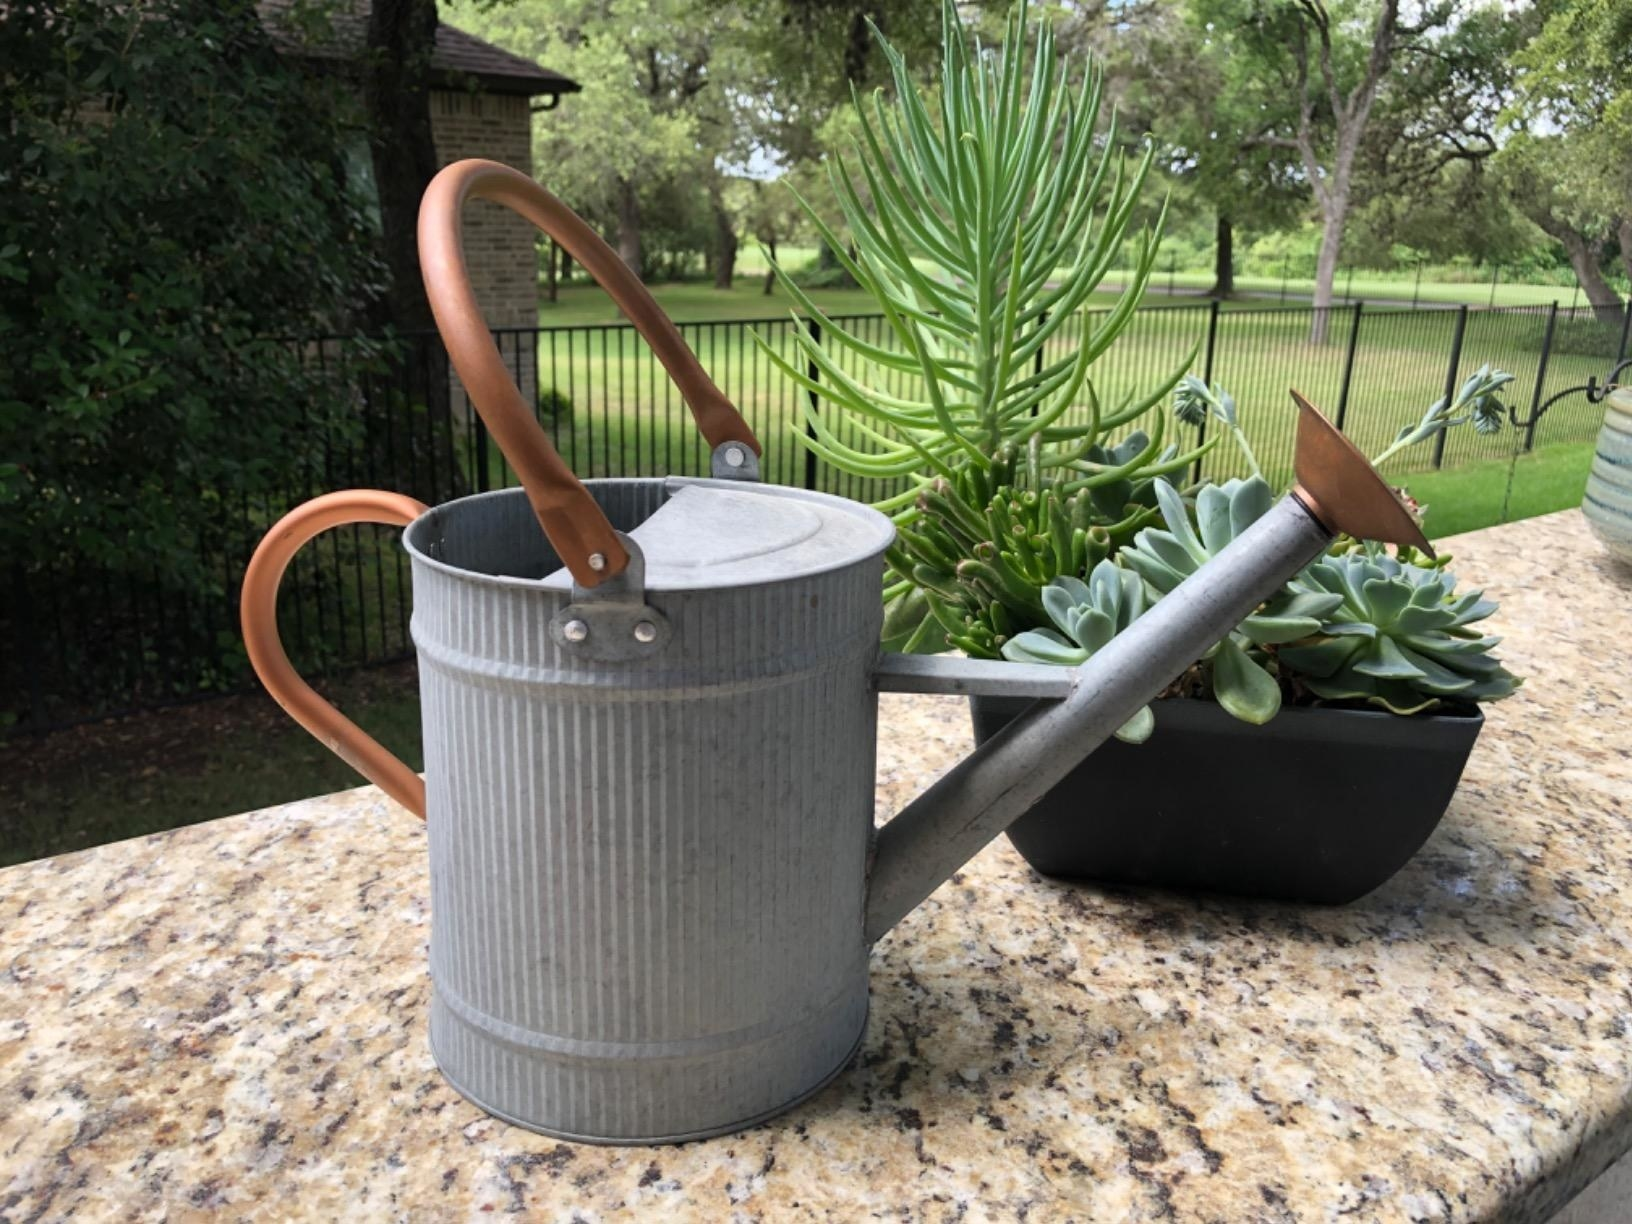 A metal watering can with copper accents sitting on a ledge